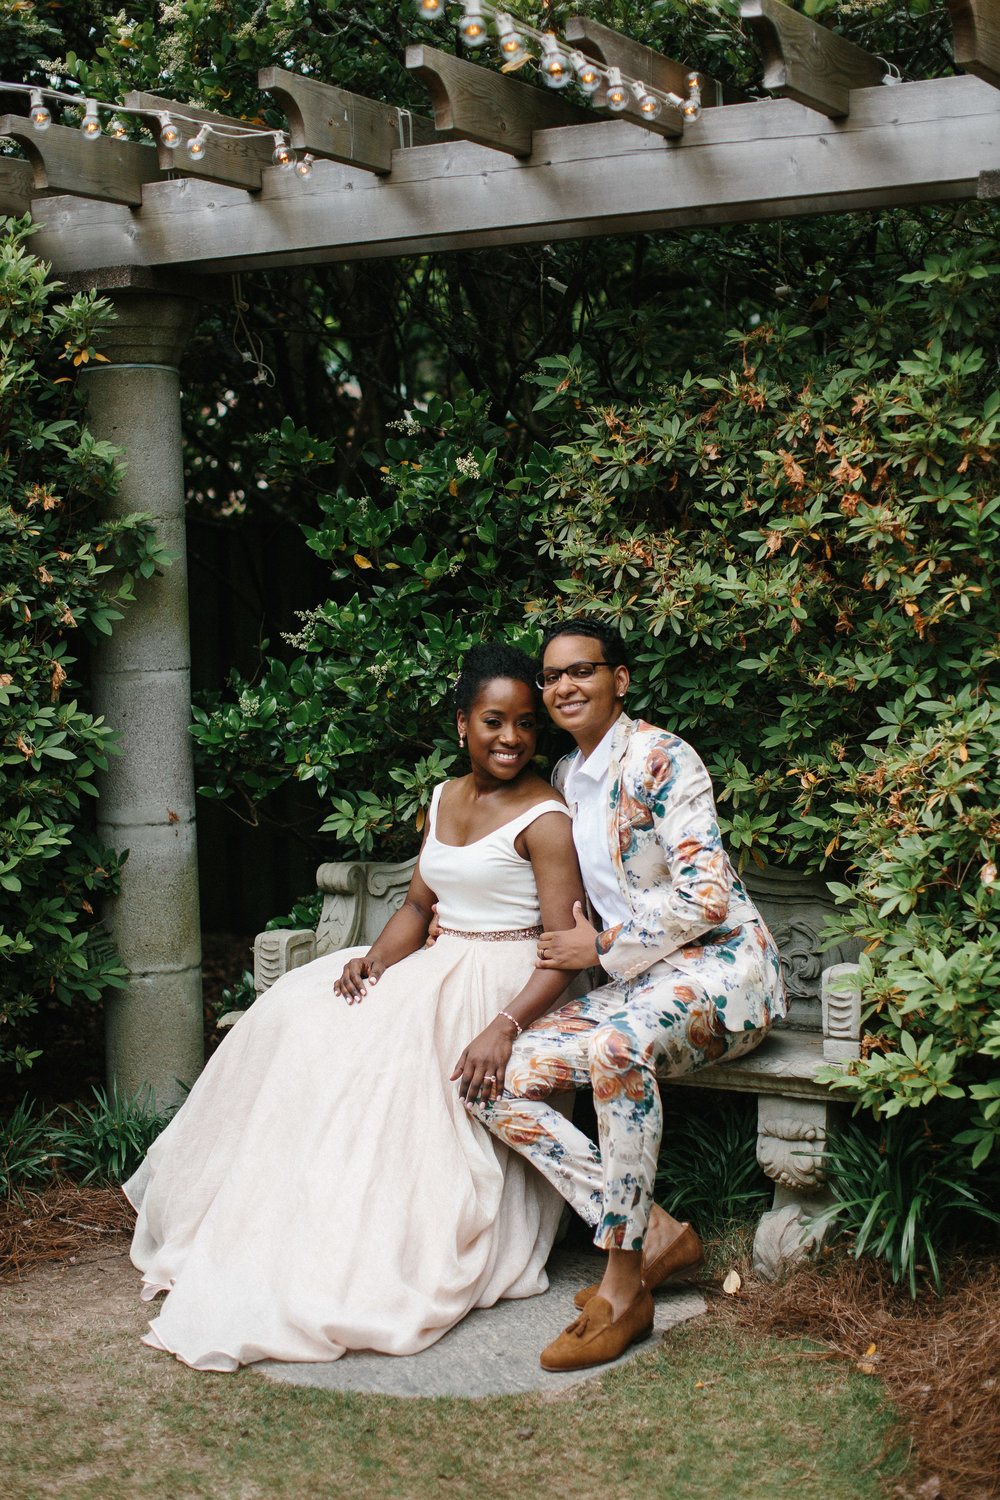 the_atrium_wedding_atlanta_norcross_lifestyle_photographers_lgbtq_1115.jpg